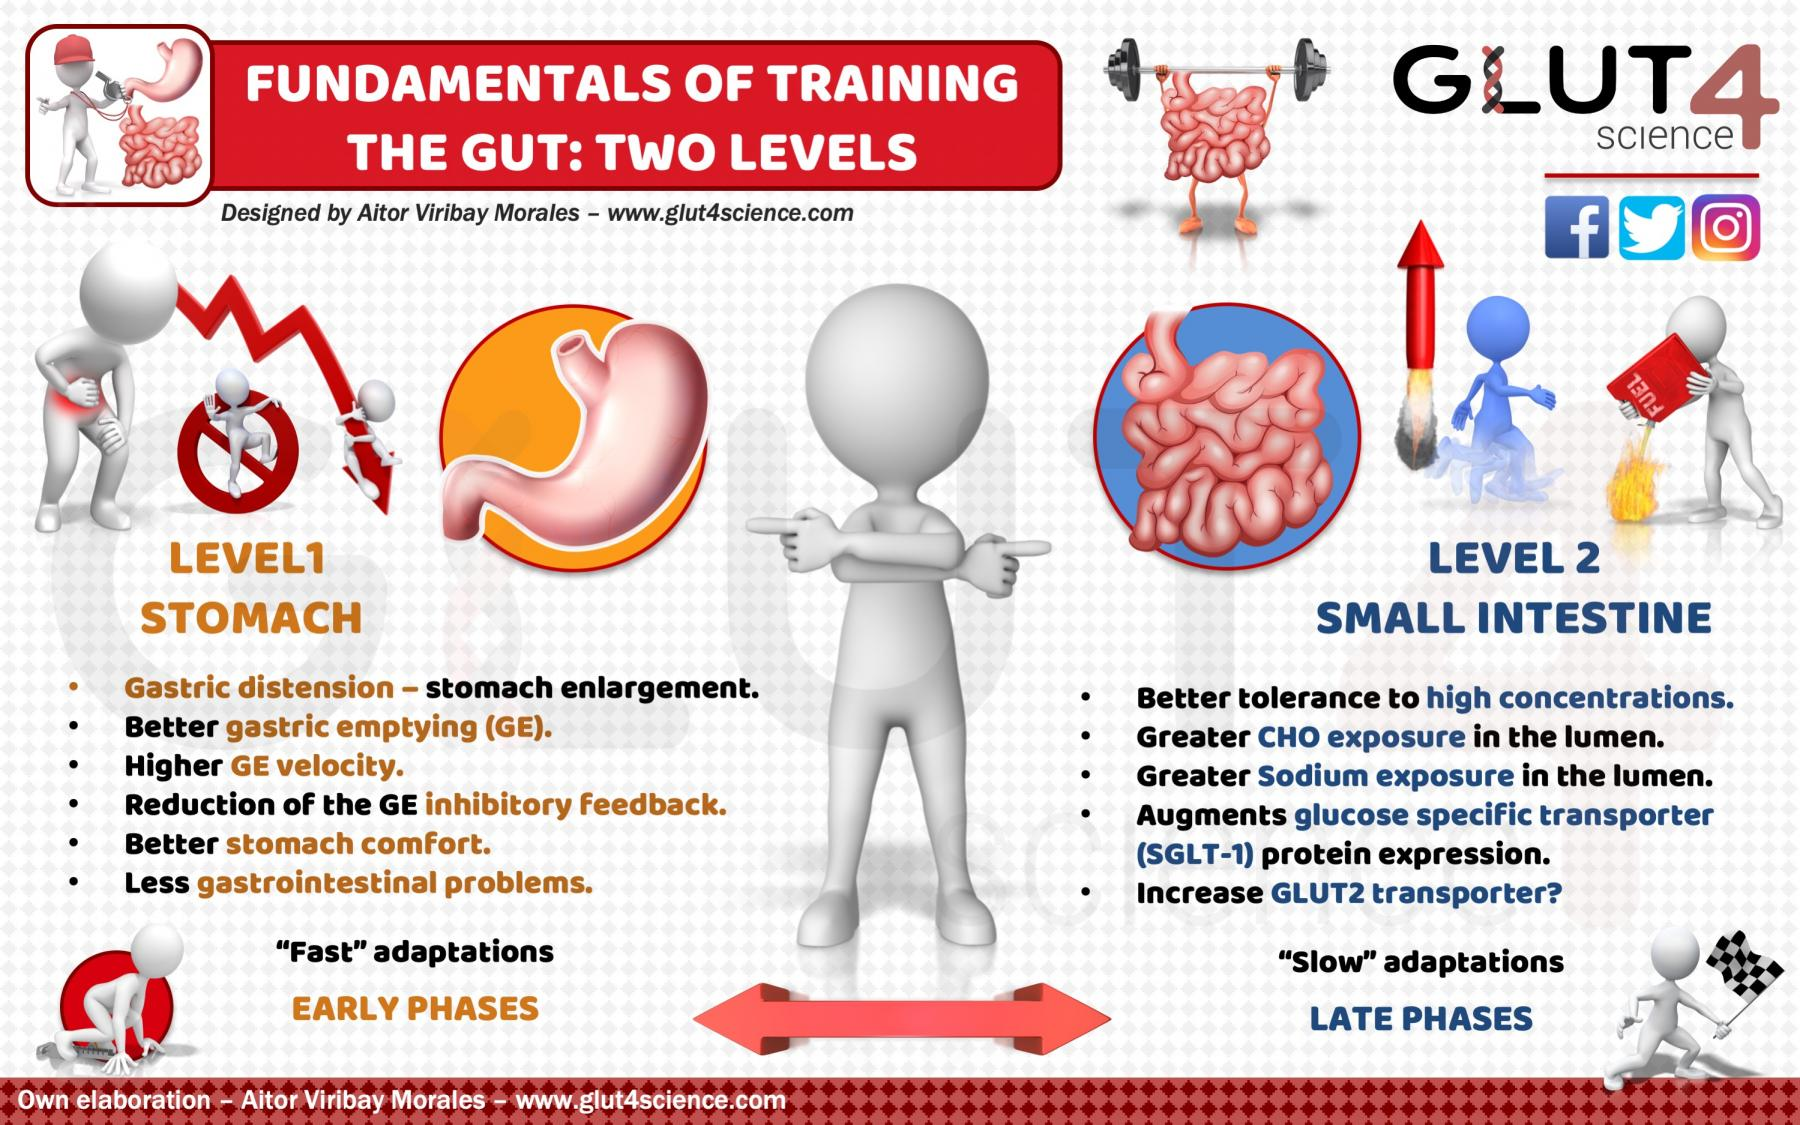 Training the gut athletes: Stomach and intestine